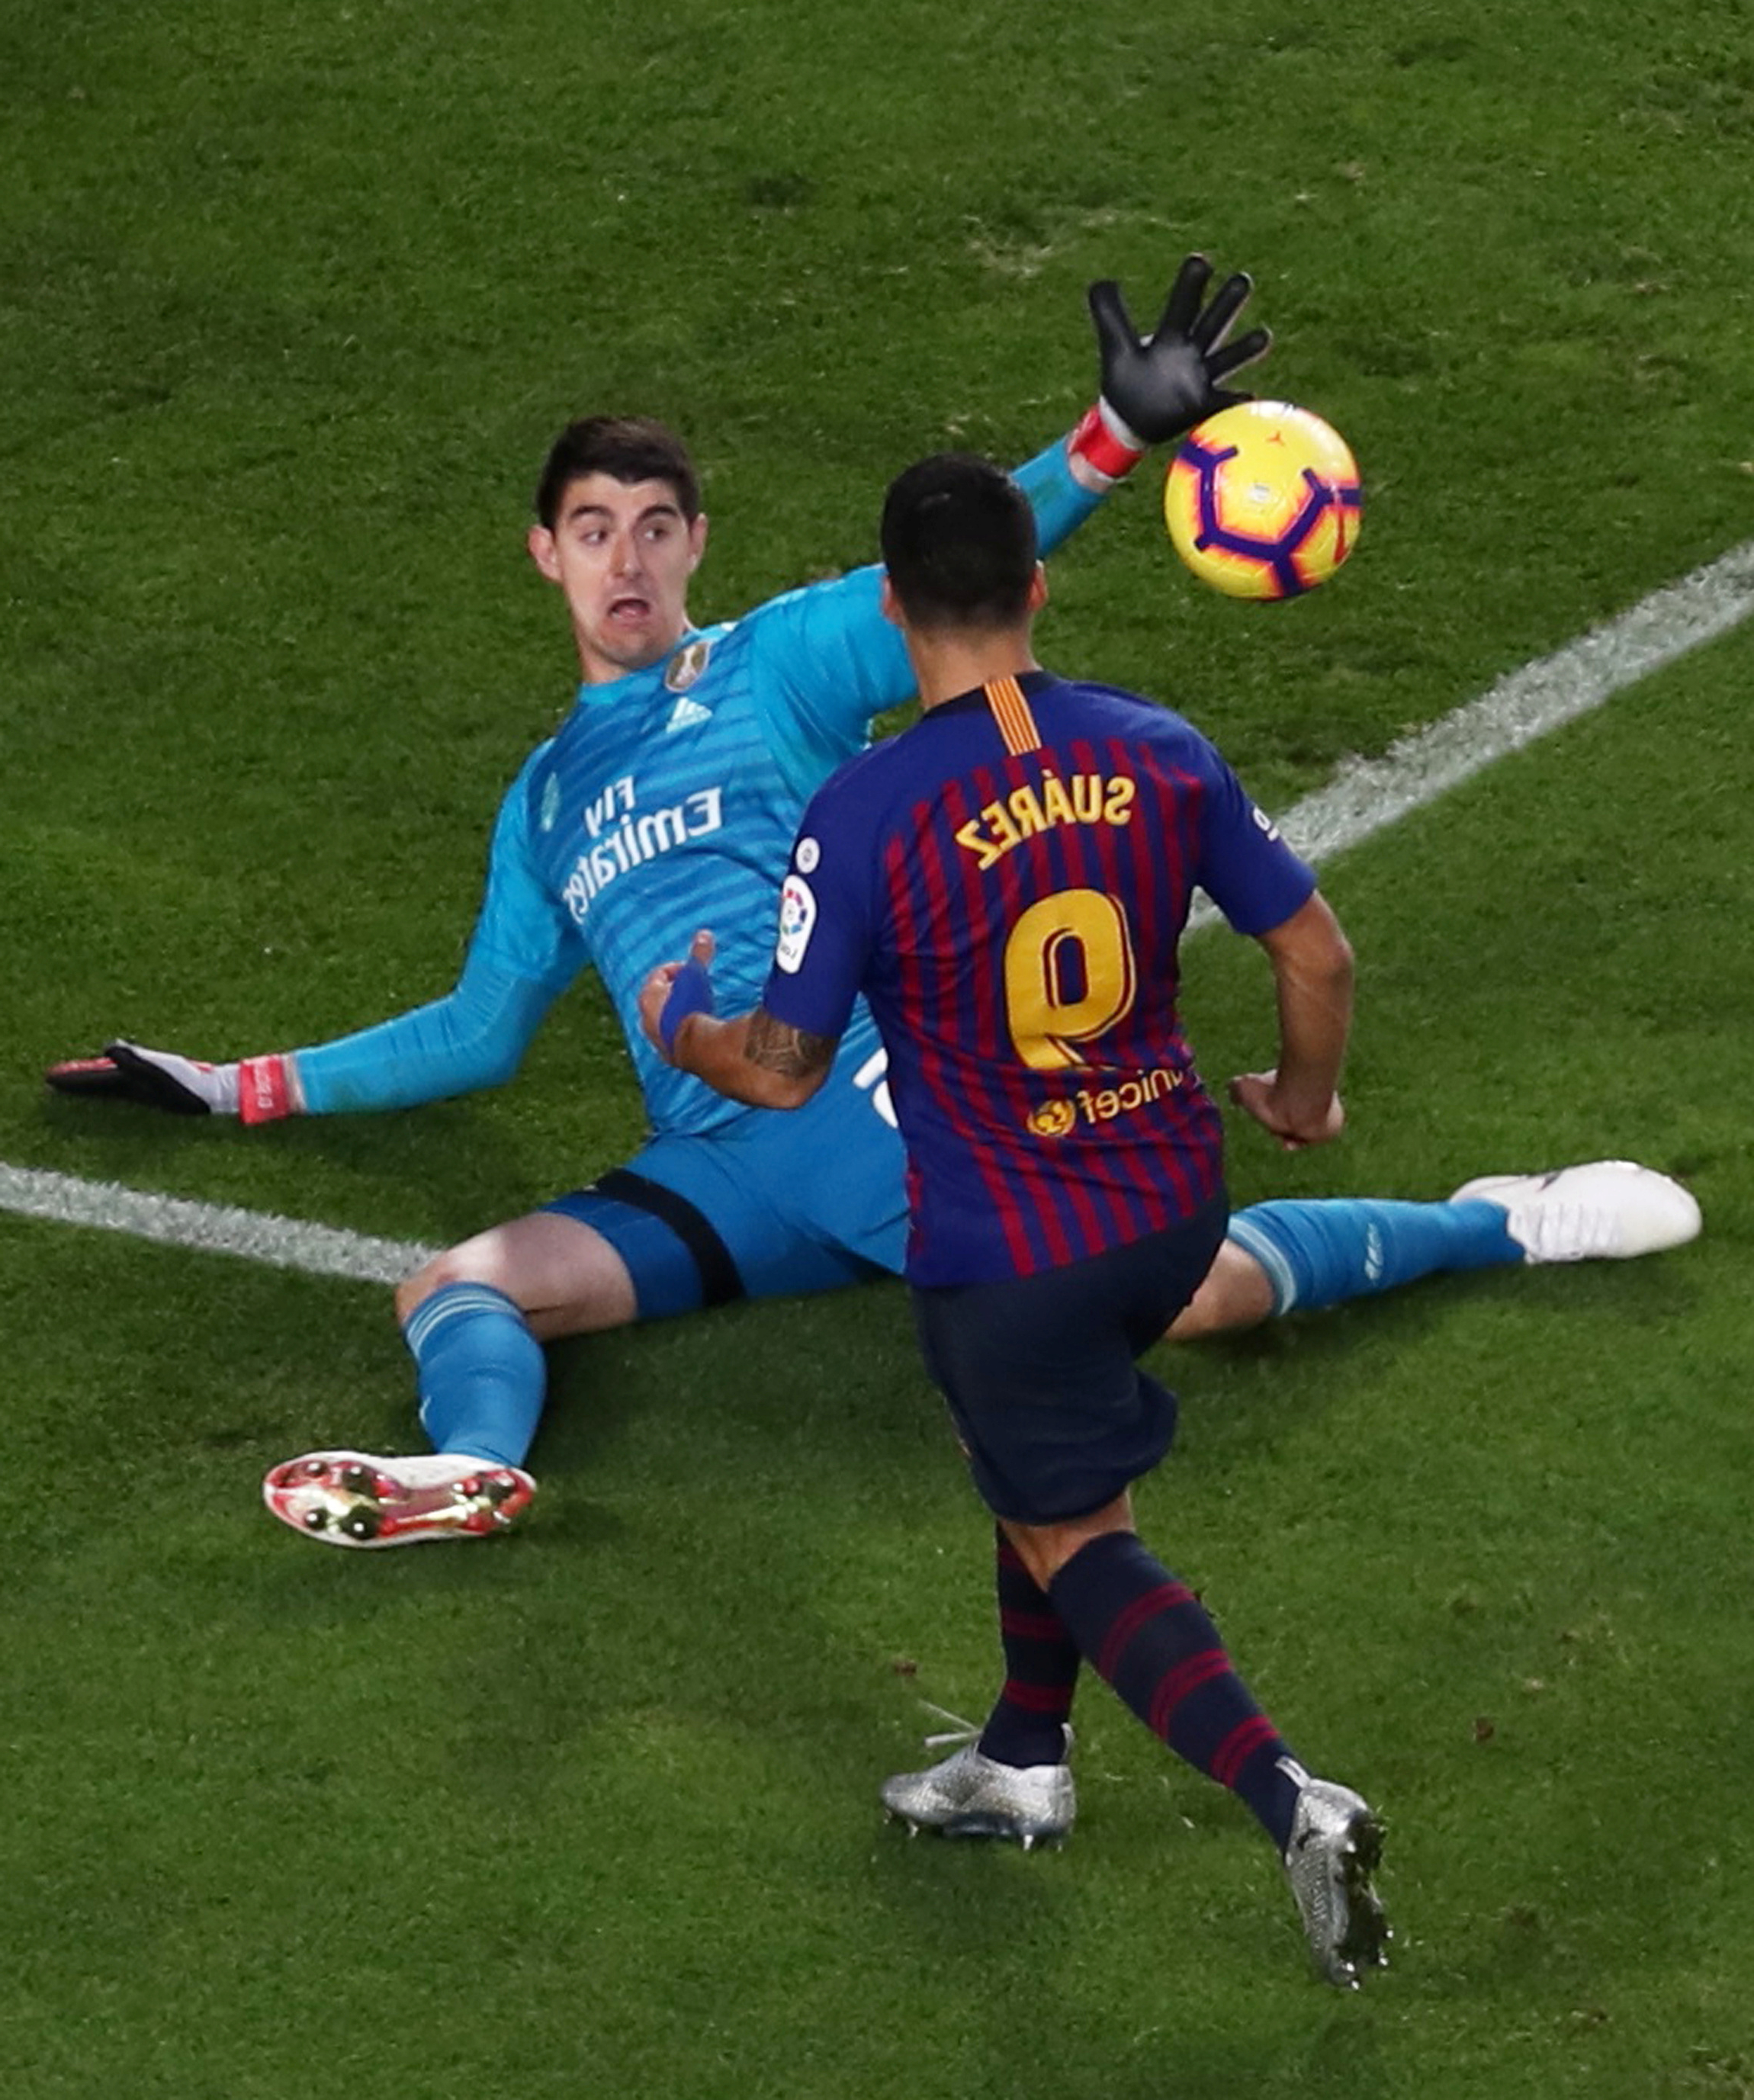 Apoel Vs Barcelona Score Grades And Reaction From: Sport: Ratings, Reaction As Suarez Sparks Barca To Clasico